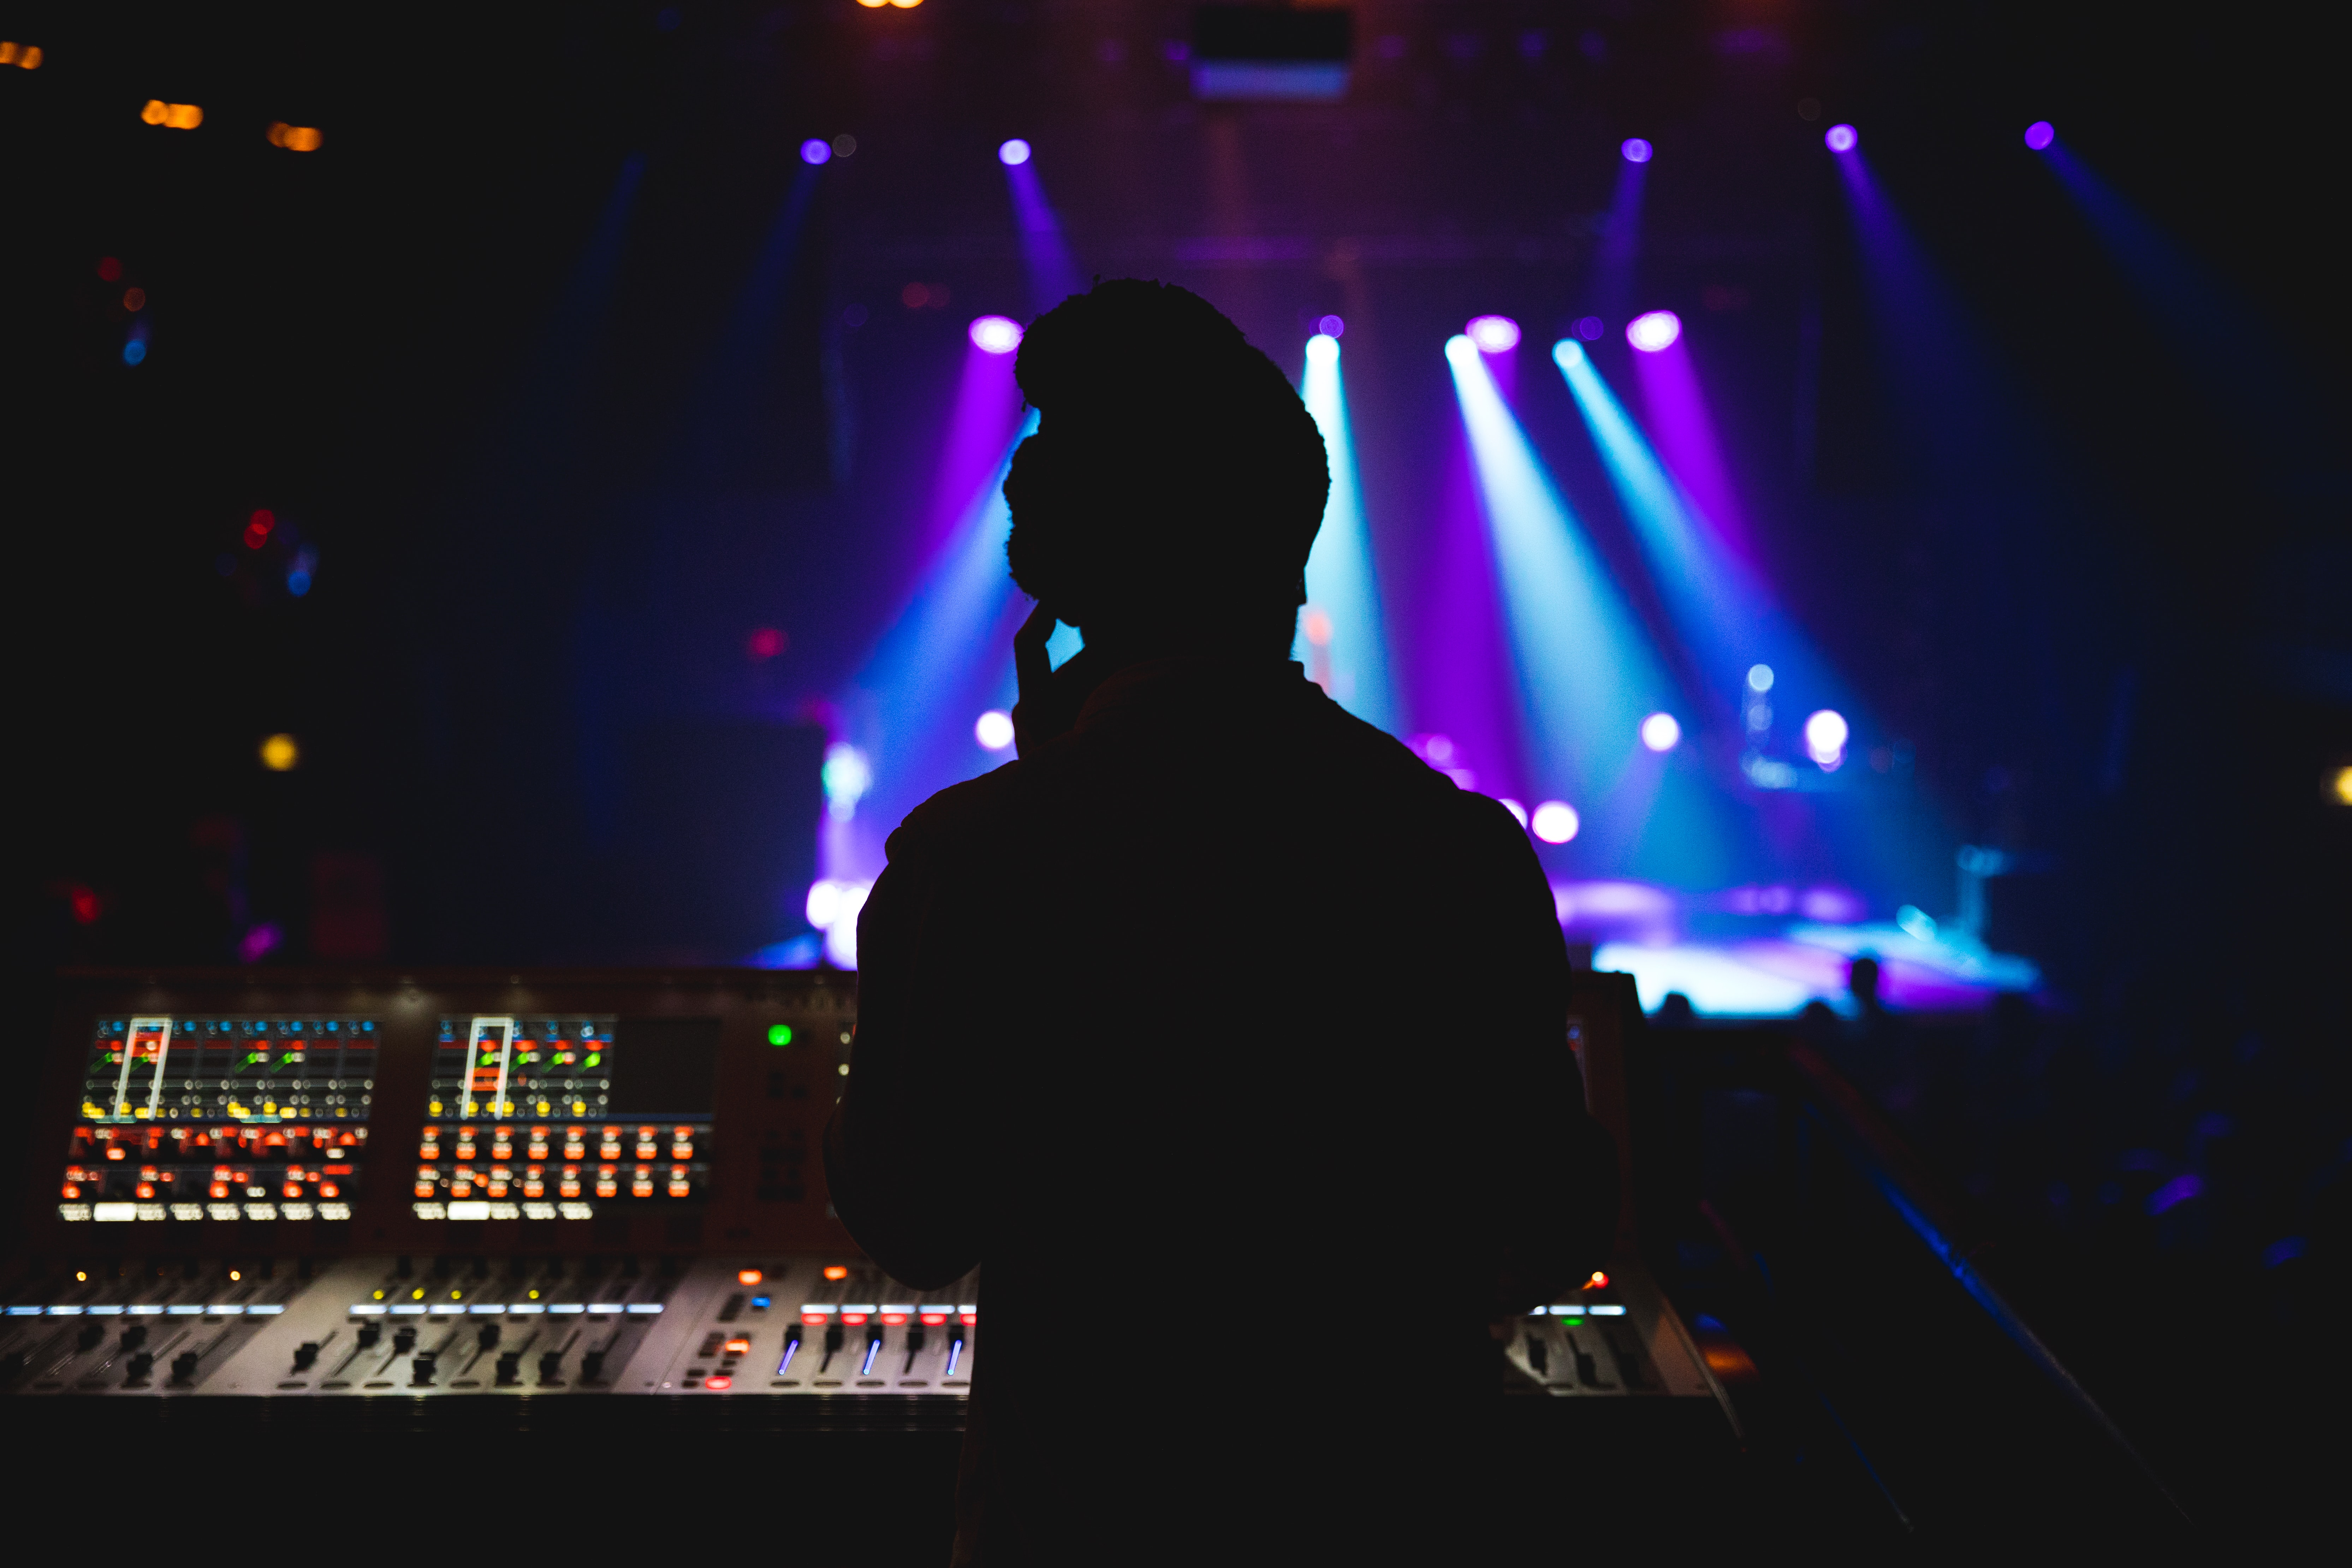 silhouette photography of DJ mixing a music